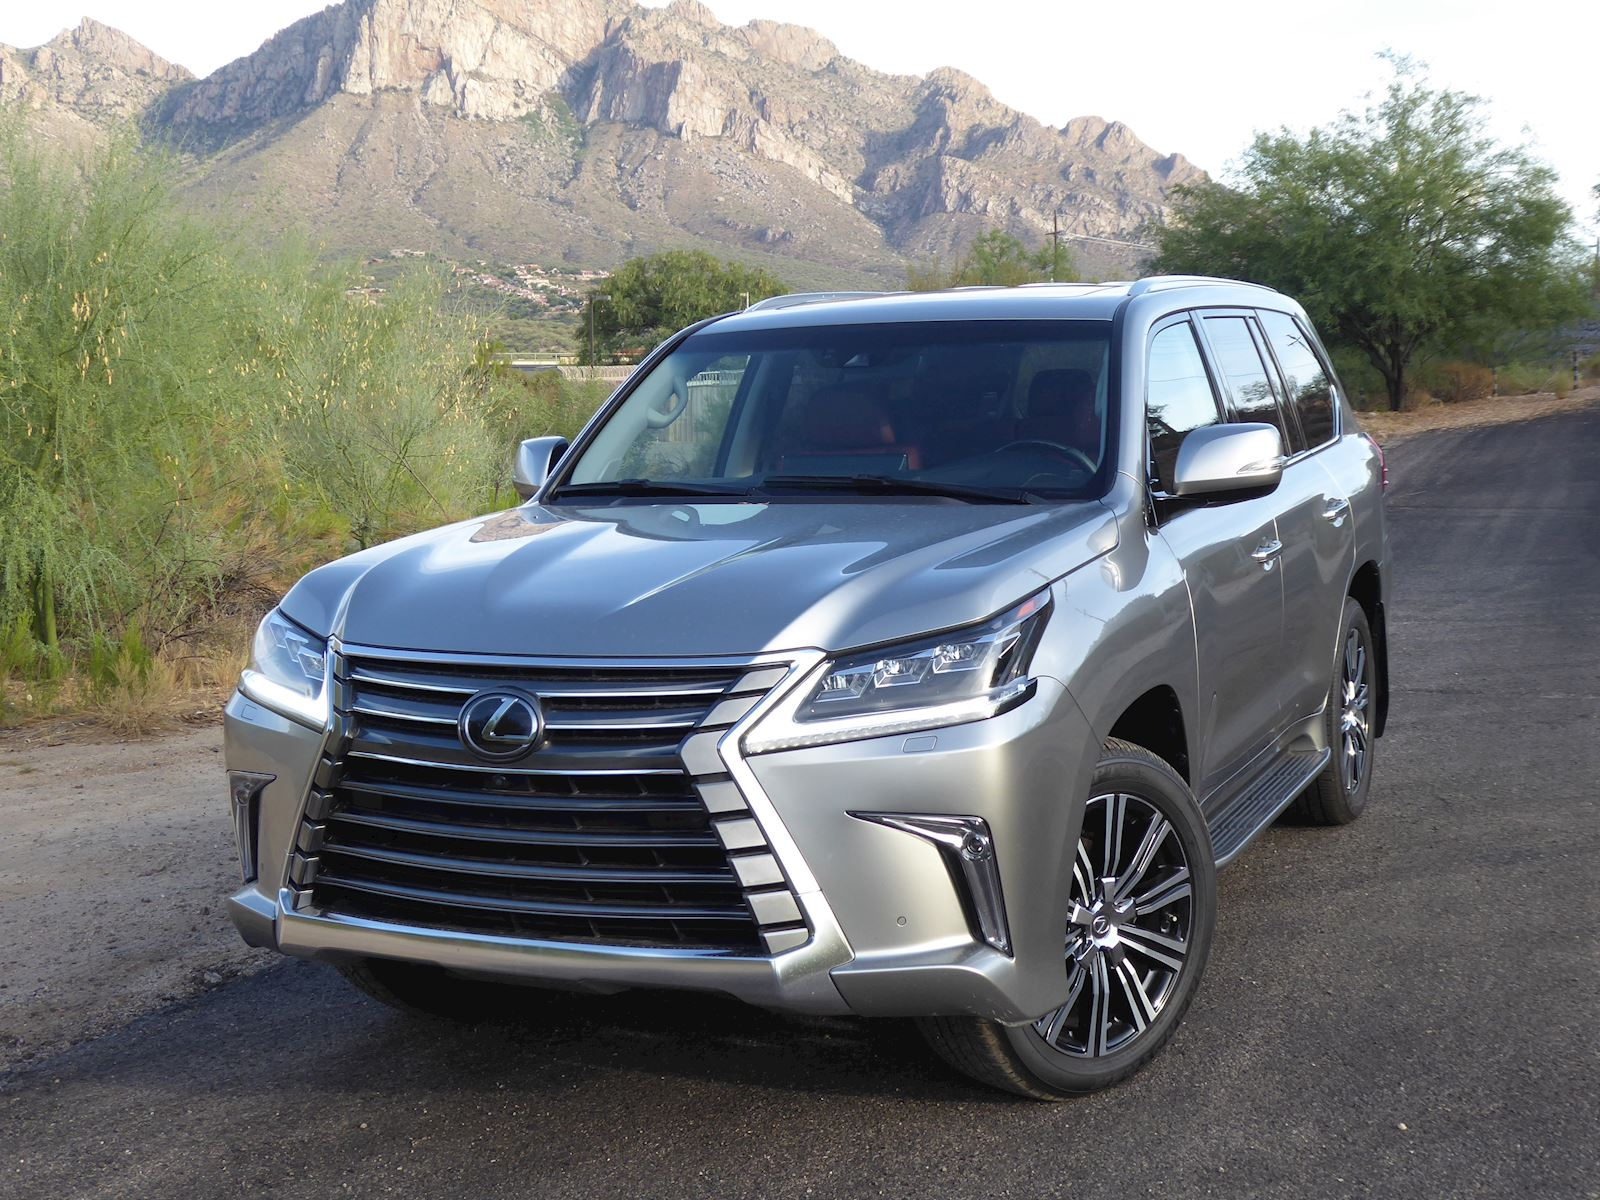 Lexus 3 Row Suv >> Test Drive 2020 Lexus Lx 570 Expert Reviews J D Power